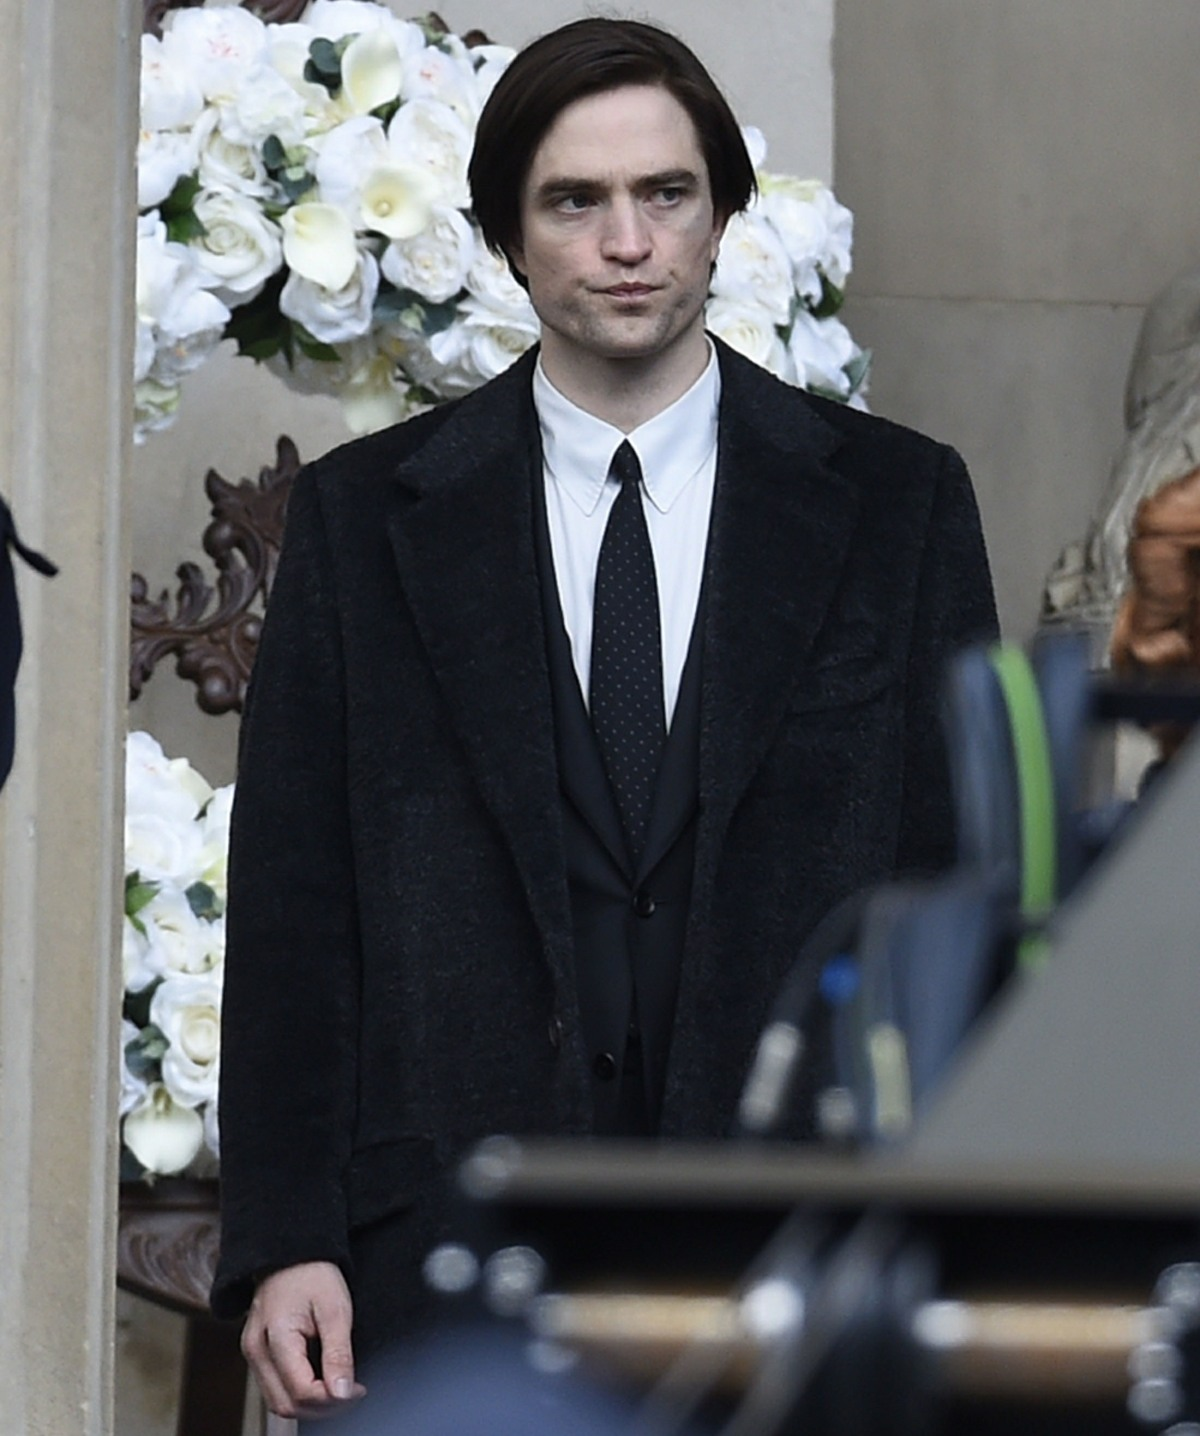 Robert Pattinson gets back to work on the set of 'The Batman' filming in Liverpool